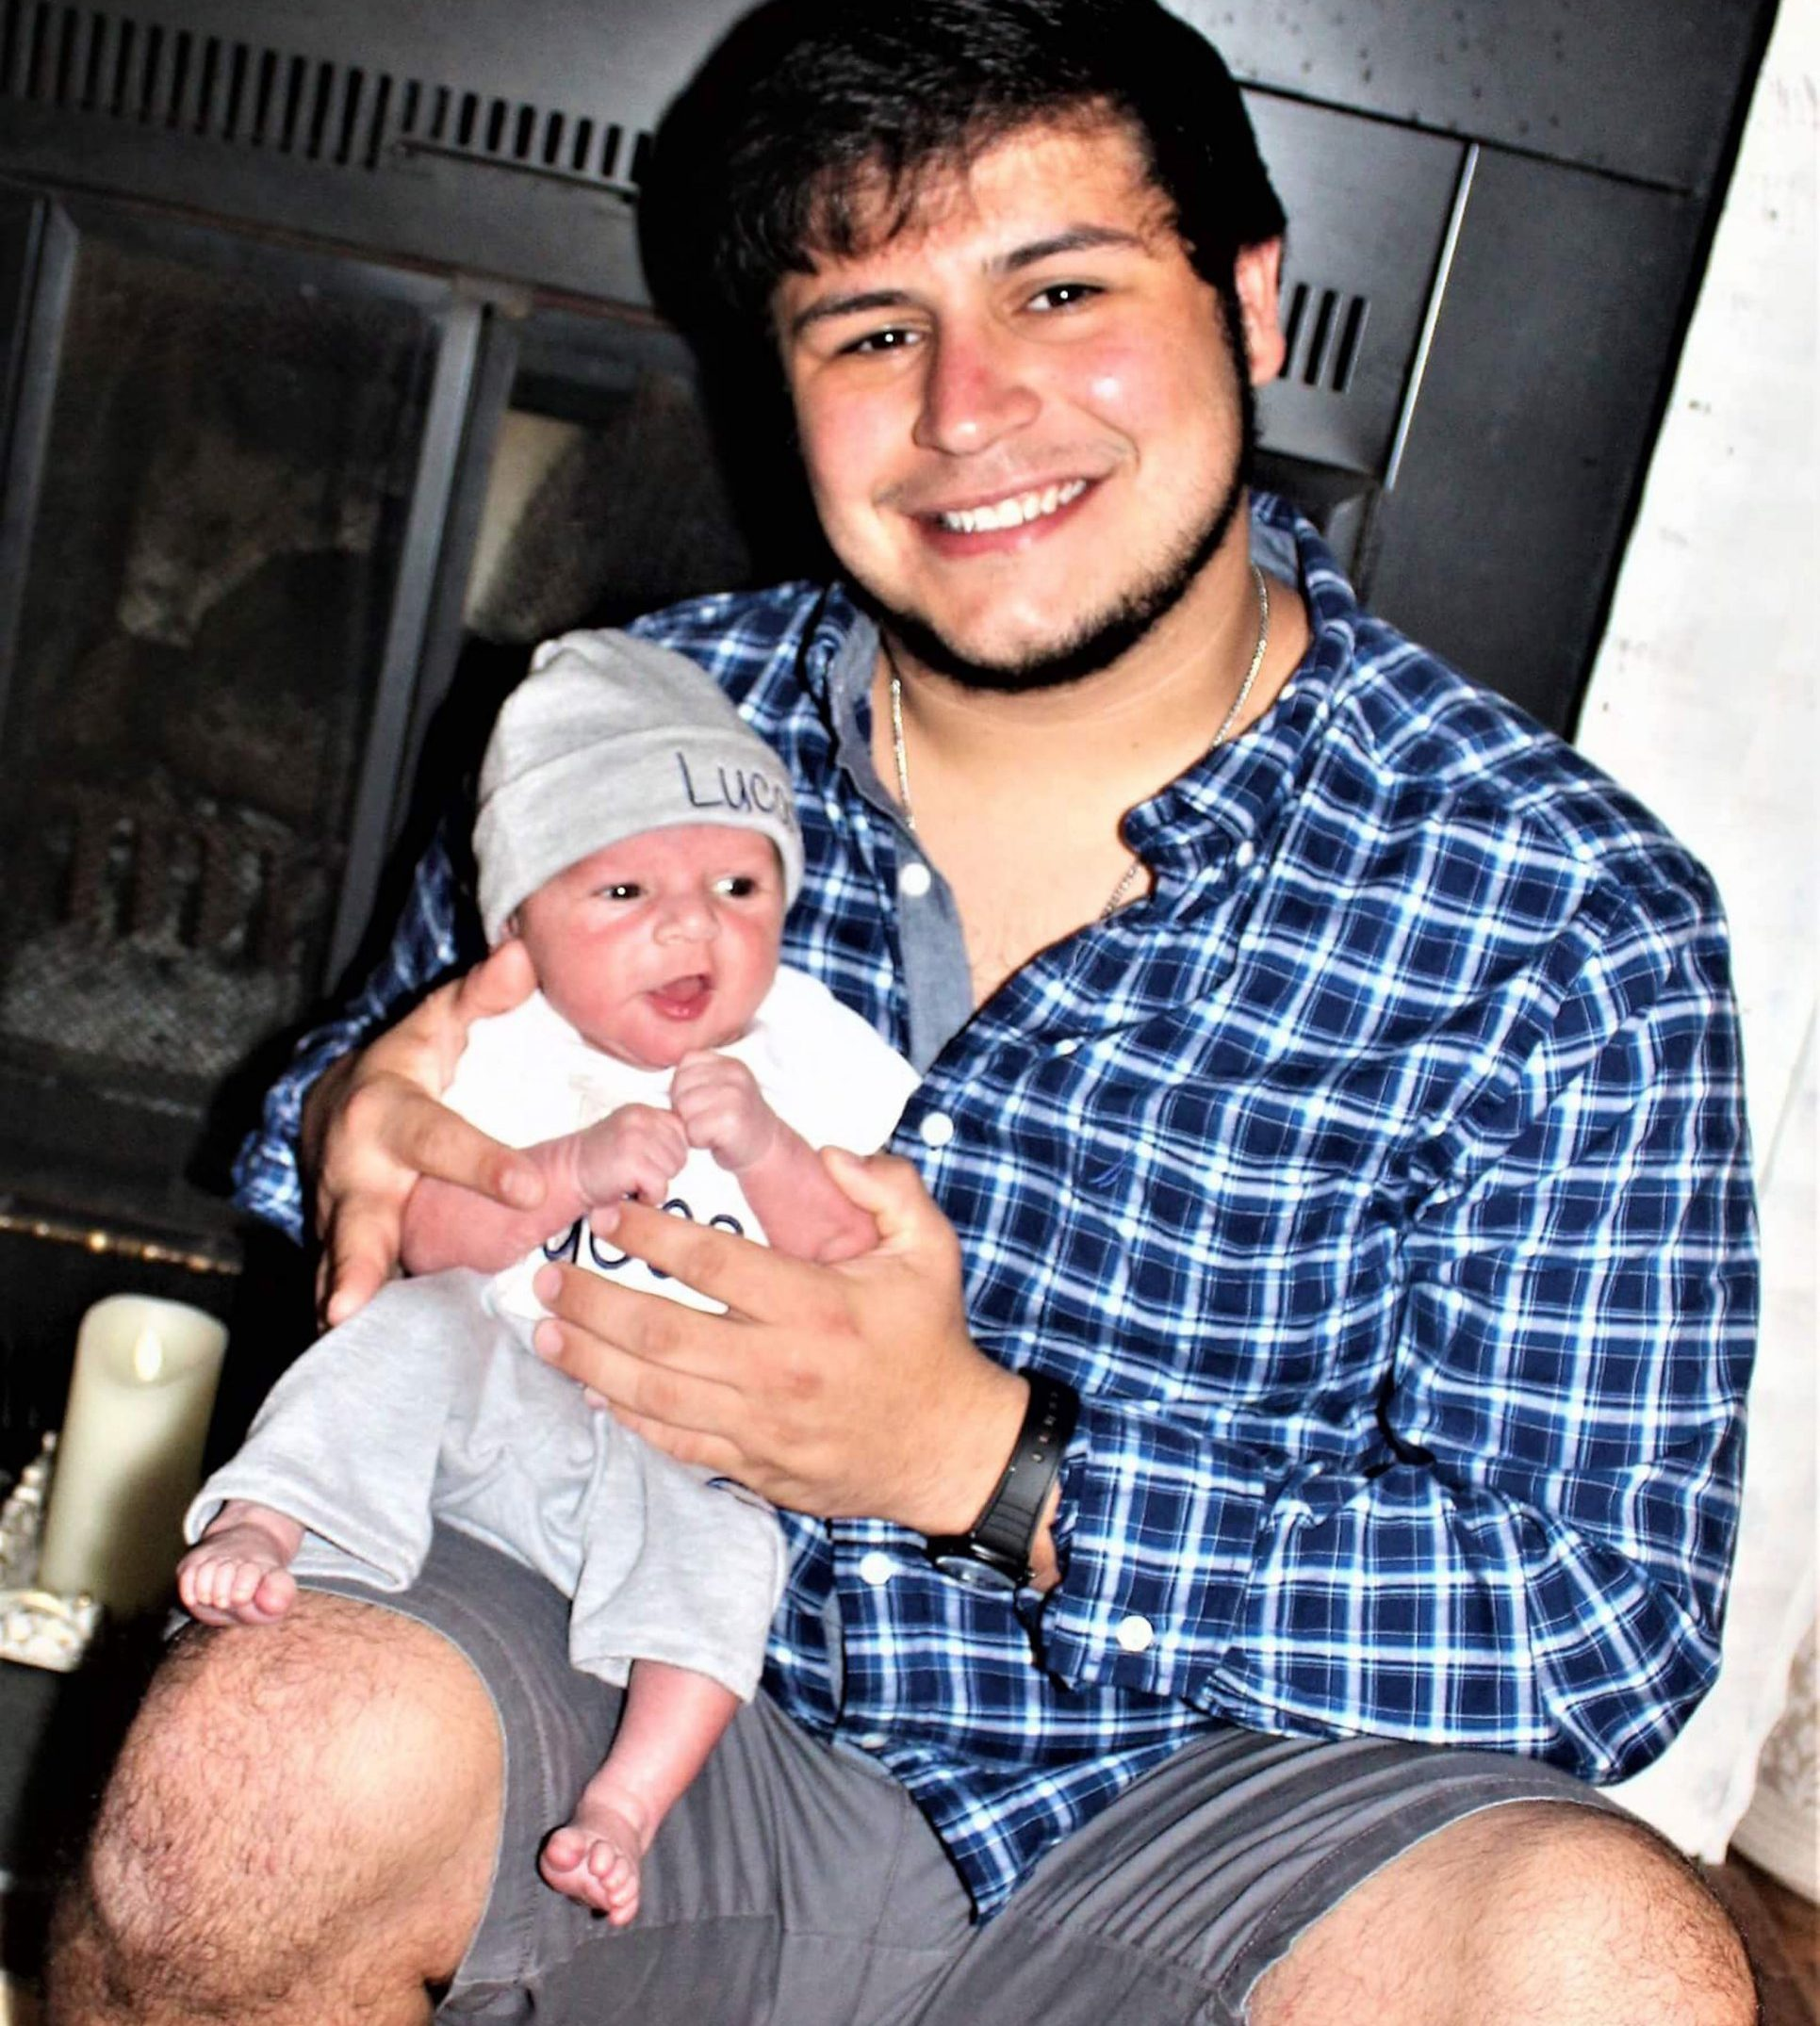 MERCURY PRESS. North Carolina, US. 19/6/18. Pictured: Carmine Martino with Lucas Martino. The heartbroken parents of a two-month-old boy who suffocated after his dad fell asleep with him on his chest have shared their anguish in a bid to warn others of the dangers of co-sleeping. Tragic Lucas John Martino died after falling between his dads arm and the sofa after the exhausted new parents fell asleep following a perfect day' spent as a family on November 26 last year. Mum Haley Gavrilis, 20, woke up to find Lucas's dad Carmine Martino, 20, asleep on the sofa and assumed Lucas was in his basket - but she started to panic when she couldnt find him and woke Carmine up. SEE MERCURY COPY